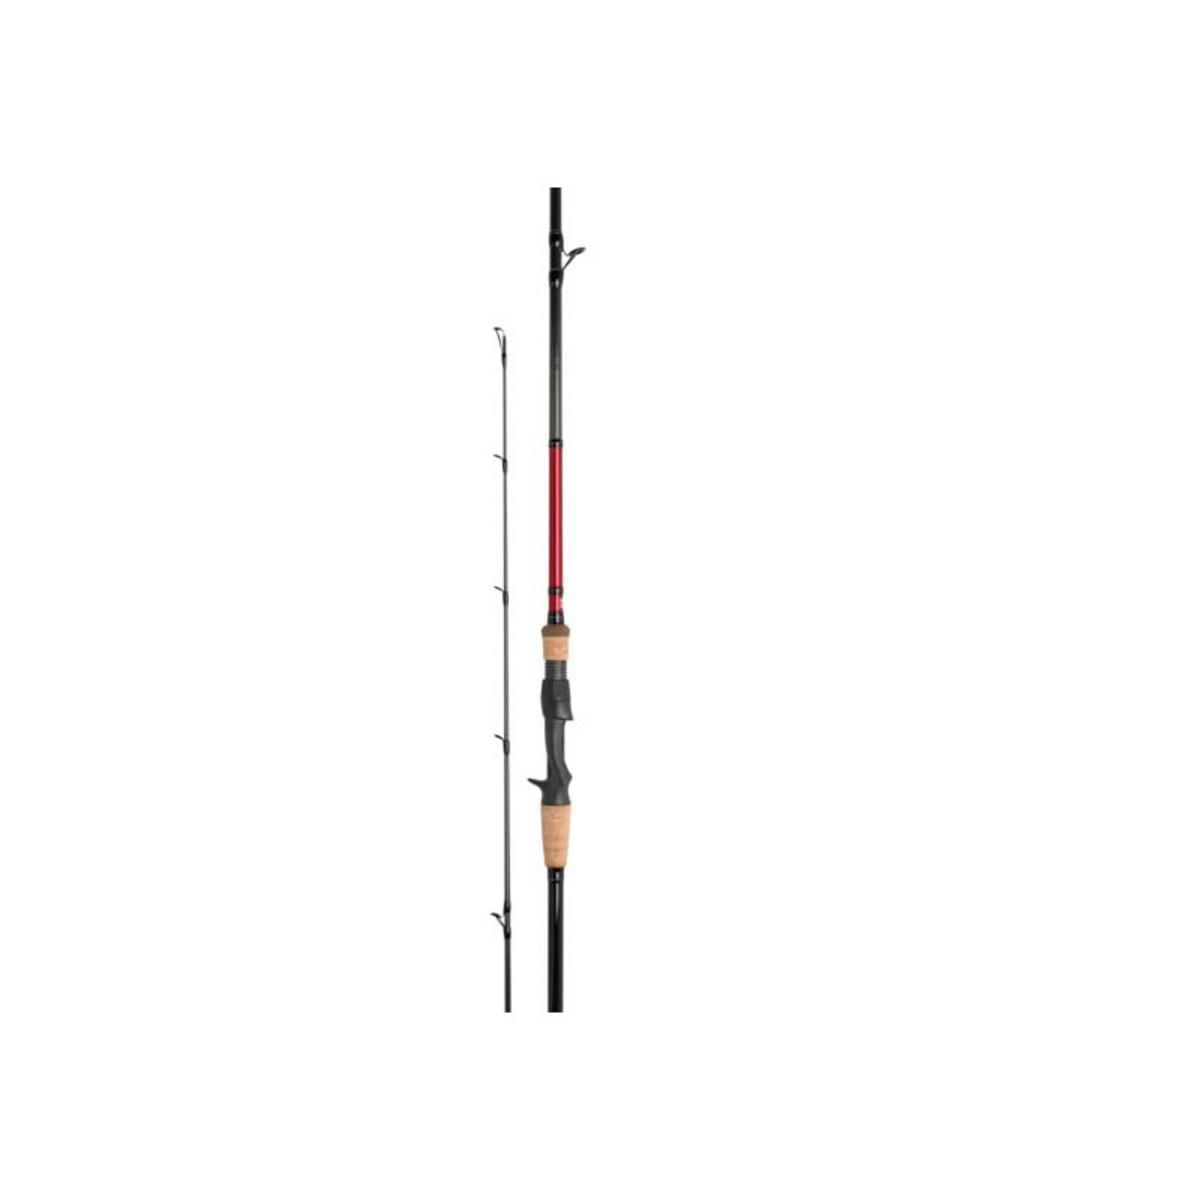 "EX DISPLAY DAIWA TOURNAMENT SHAD DANCER 8' 6"" SPIN ROD"